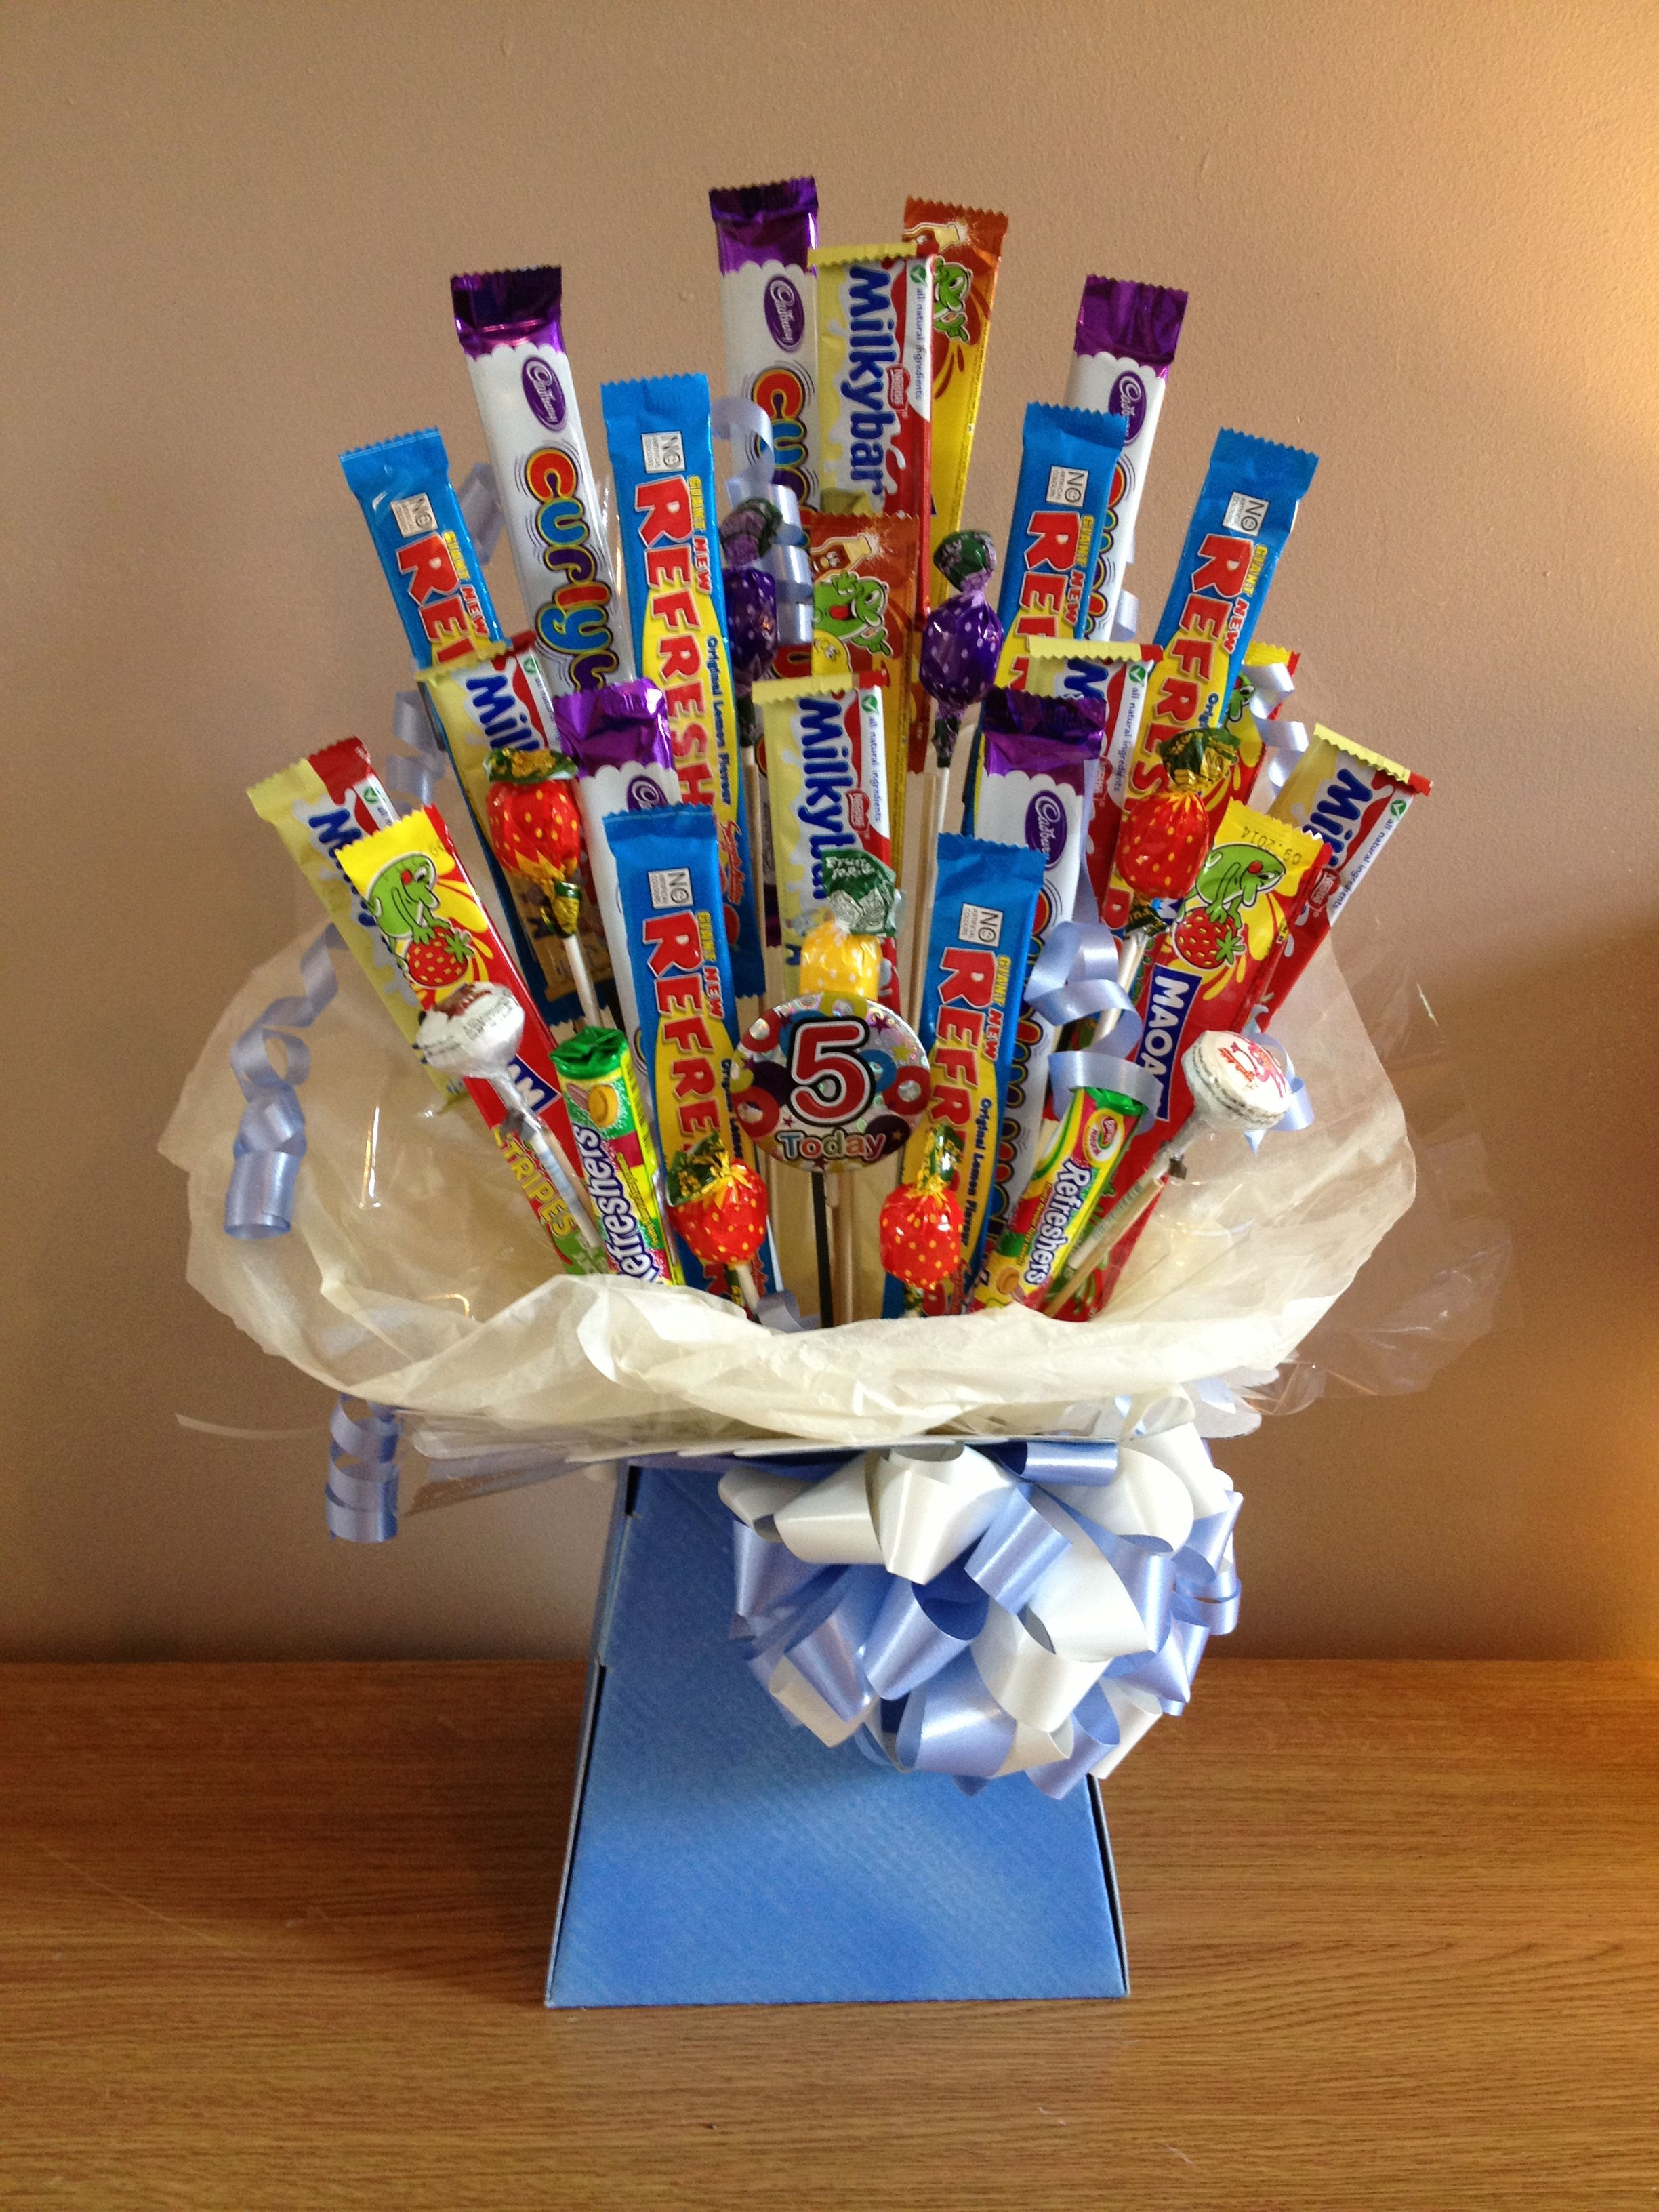 Pin by kevin girard on candy in 2018 pinterest flowers facebook pin by kevin girard on candy in 2018 pinterest flowers facebook and chocolate bouquet izmirmasajfo